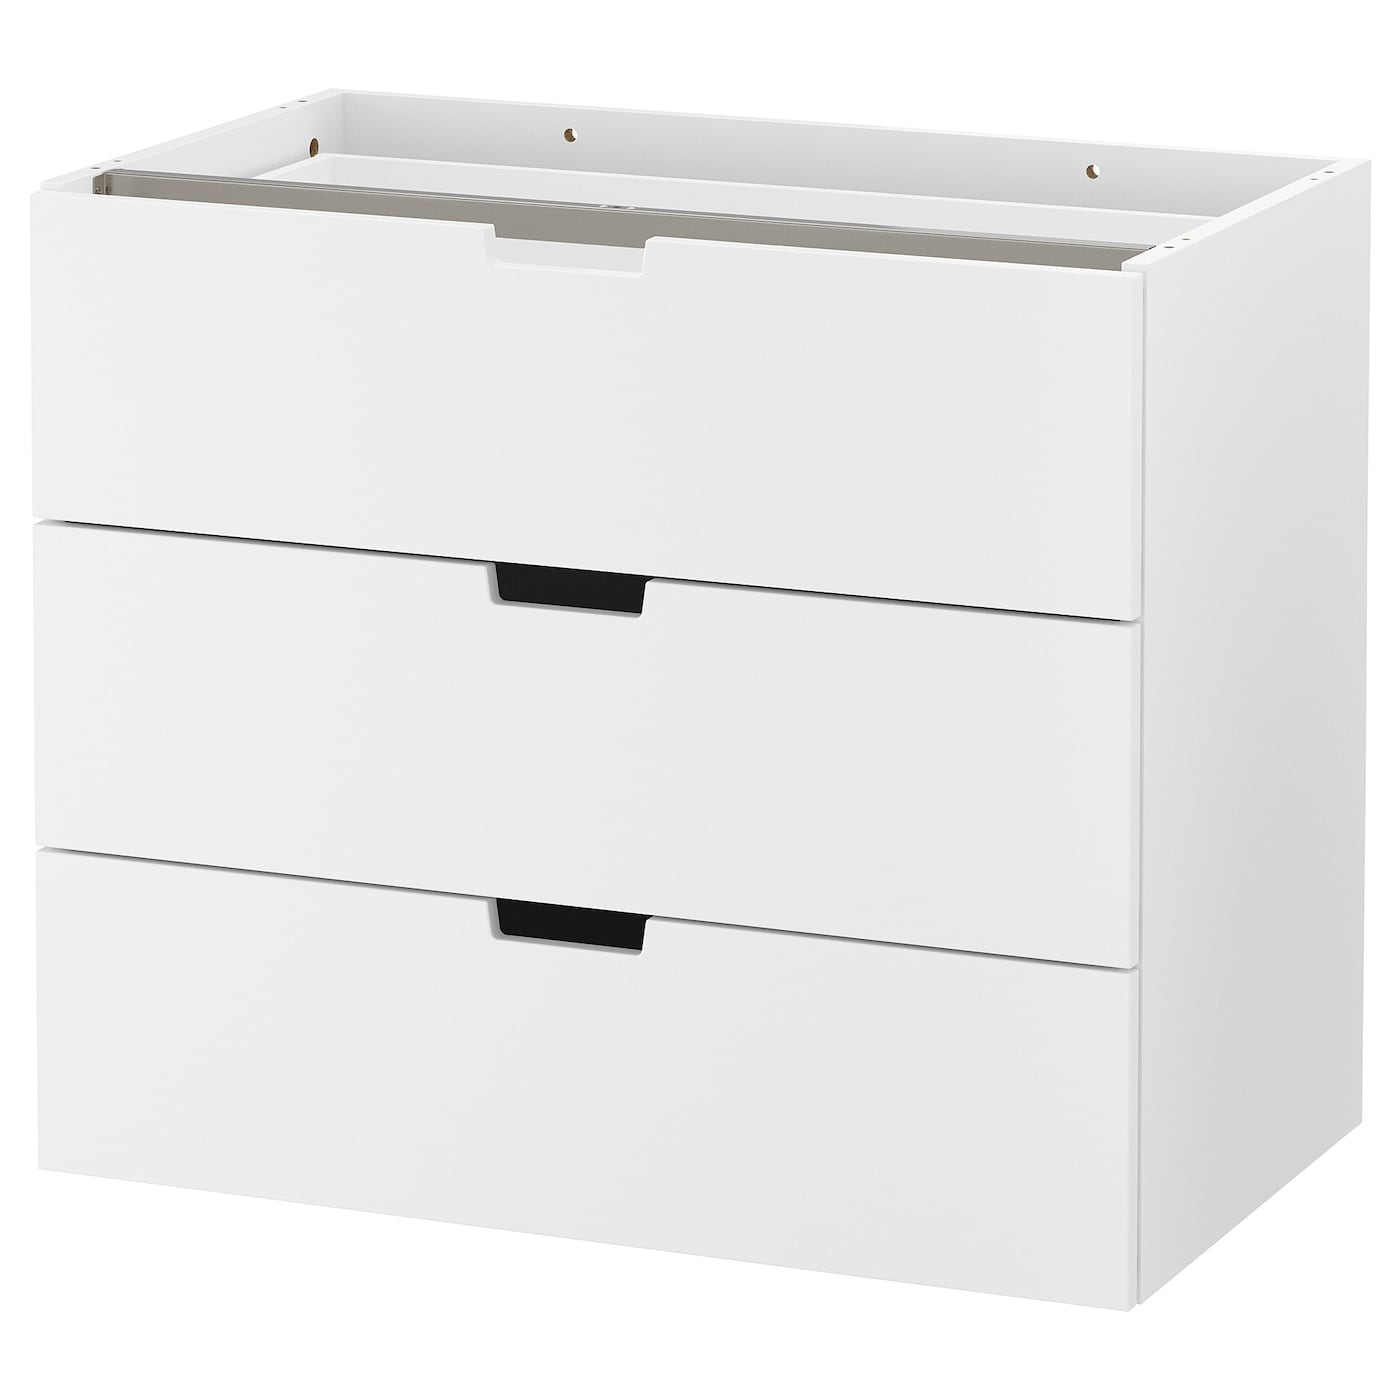 nordli commode modulable 3 tir blanc 80 x 68 cm ikea. Black Bedroom Furniture Sets. Home Design Ideas